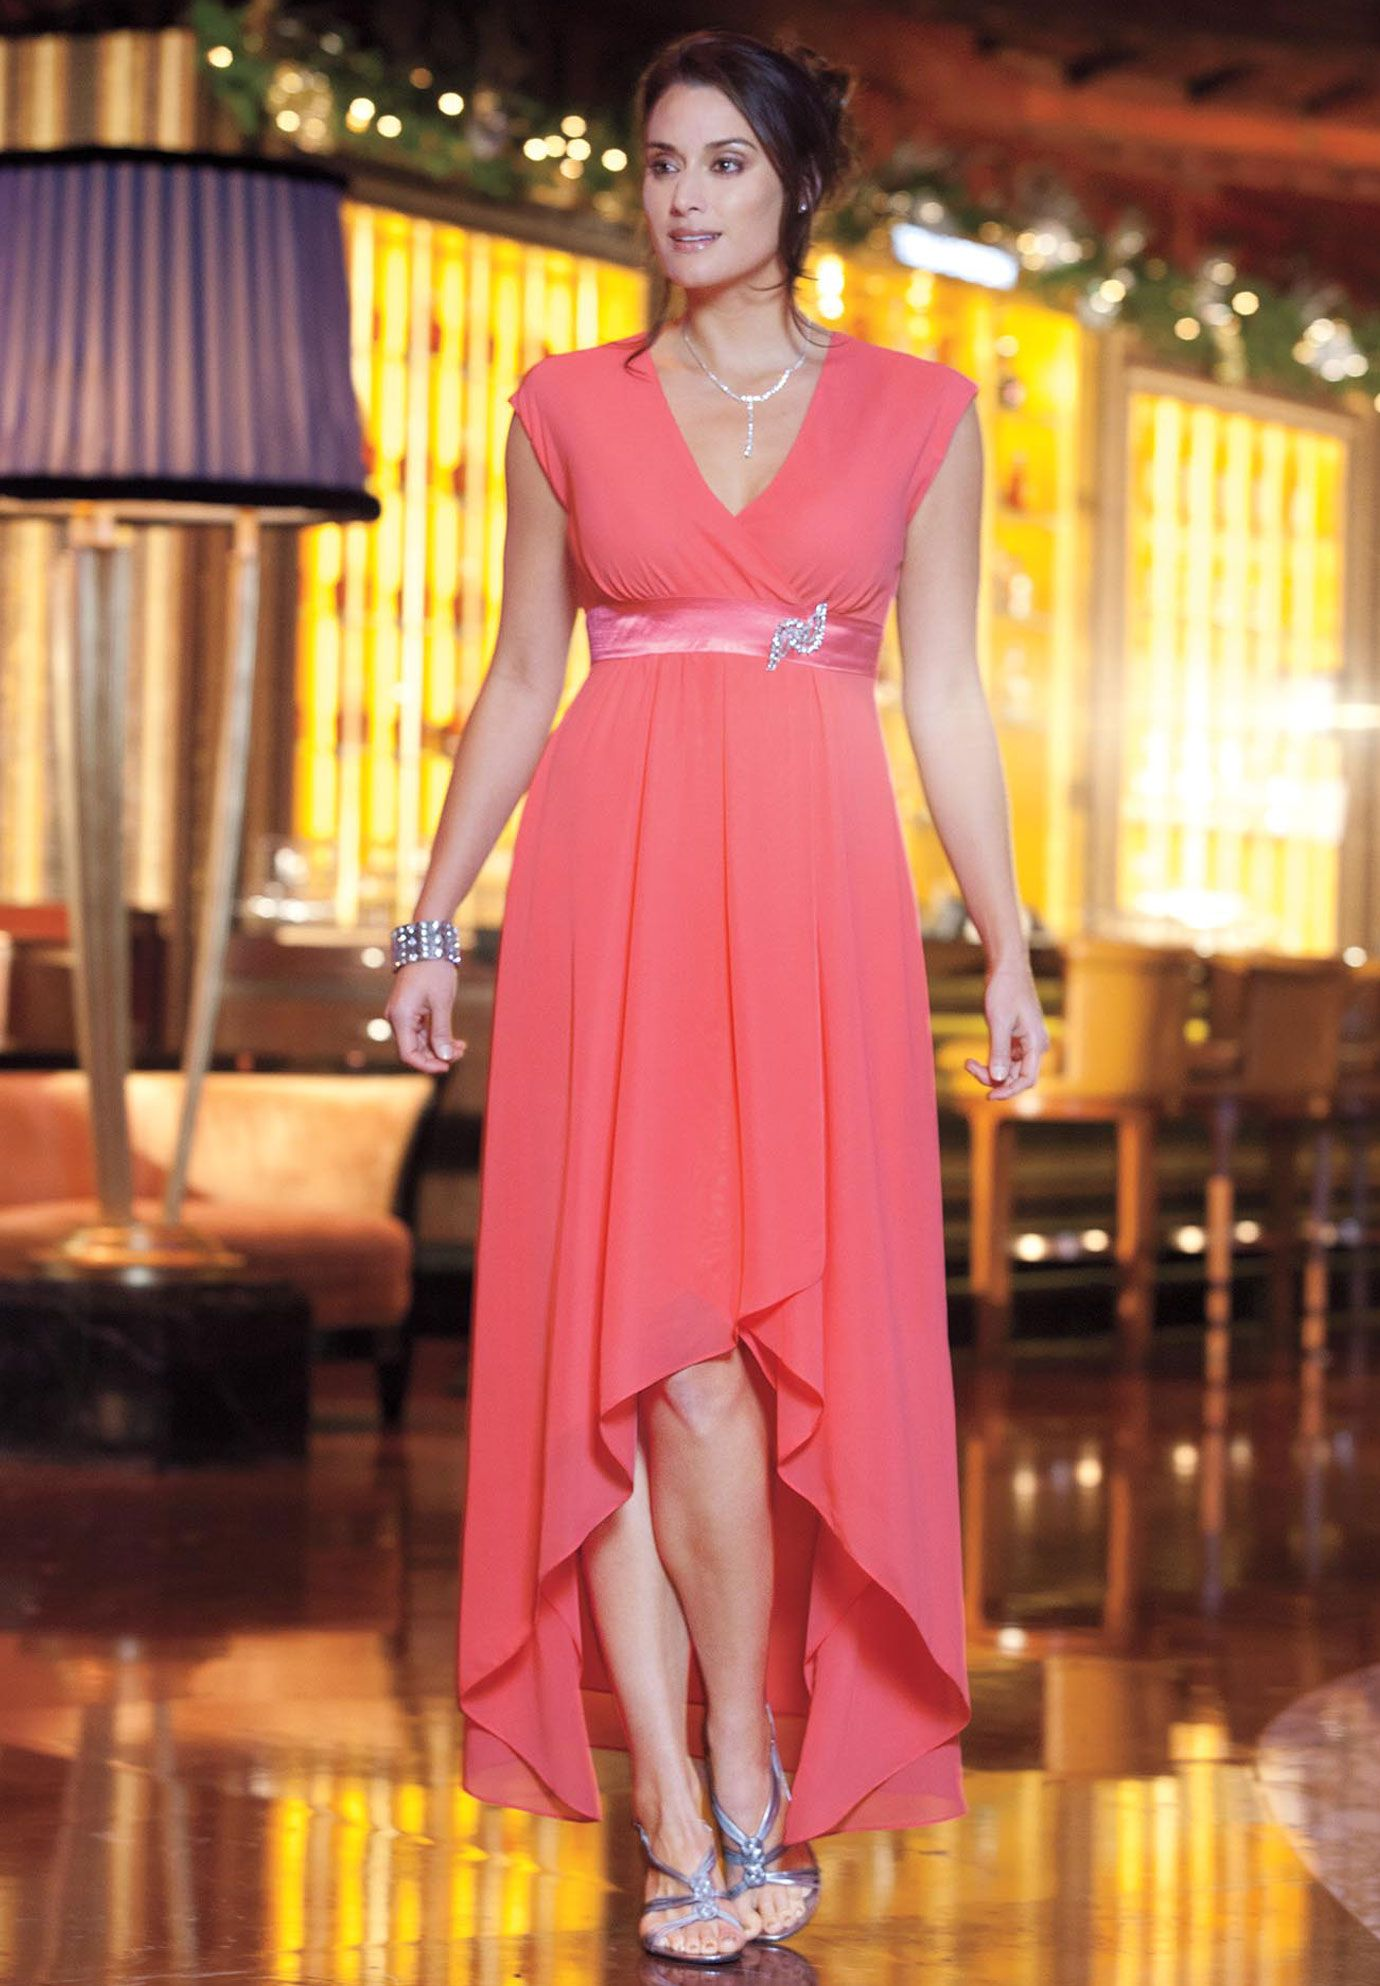 Plus size coral dress for wedding  Plus Size High Low Dress  Plus Size Cocktail Dresses  Jessica